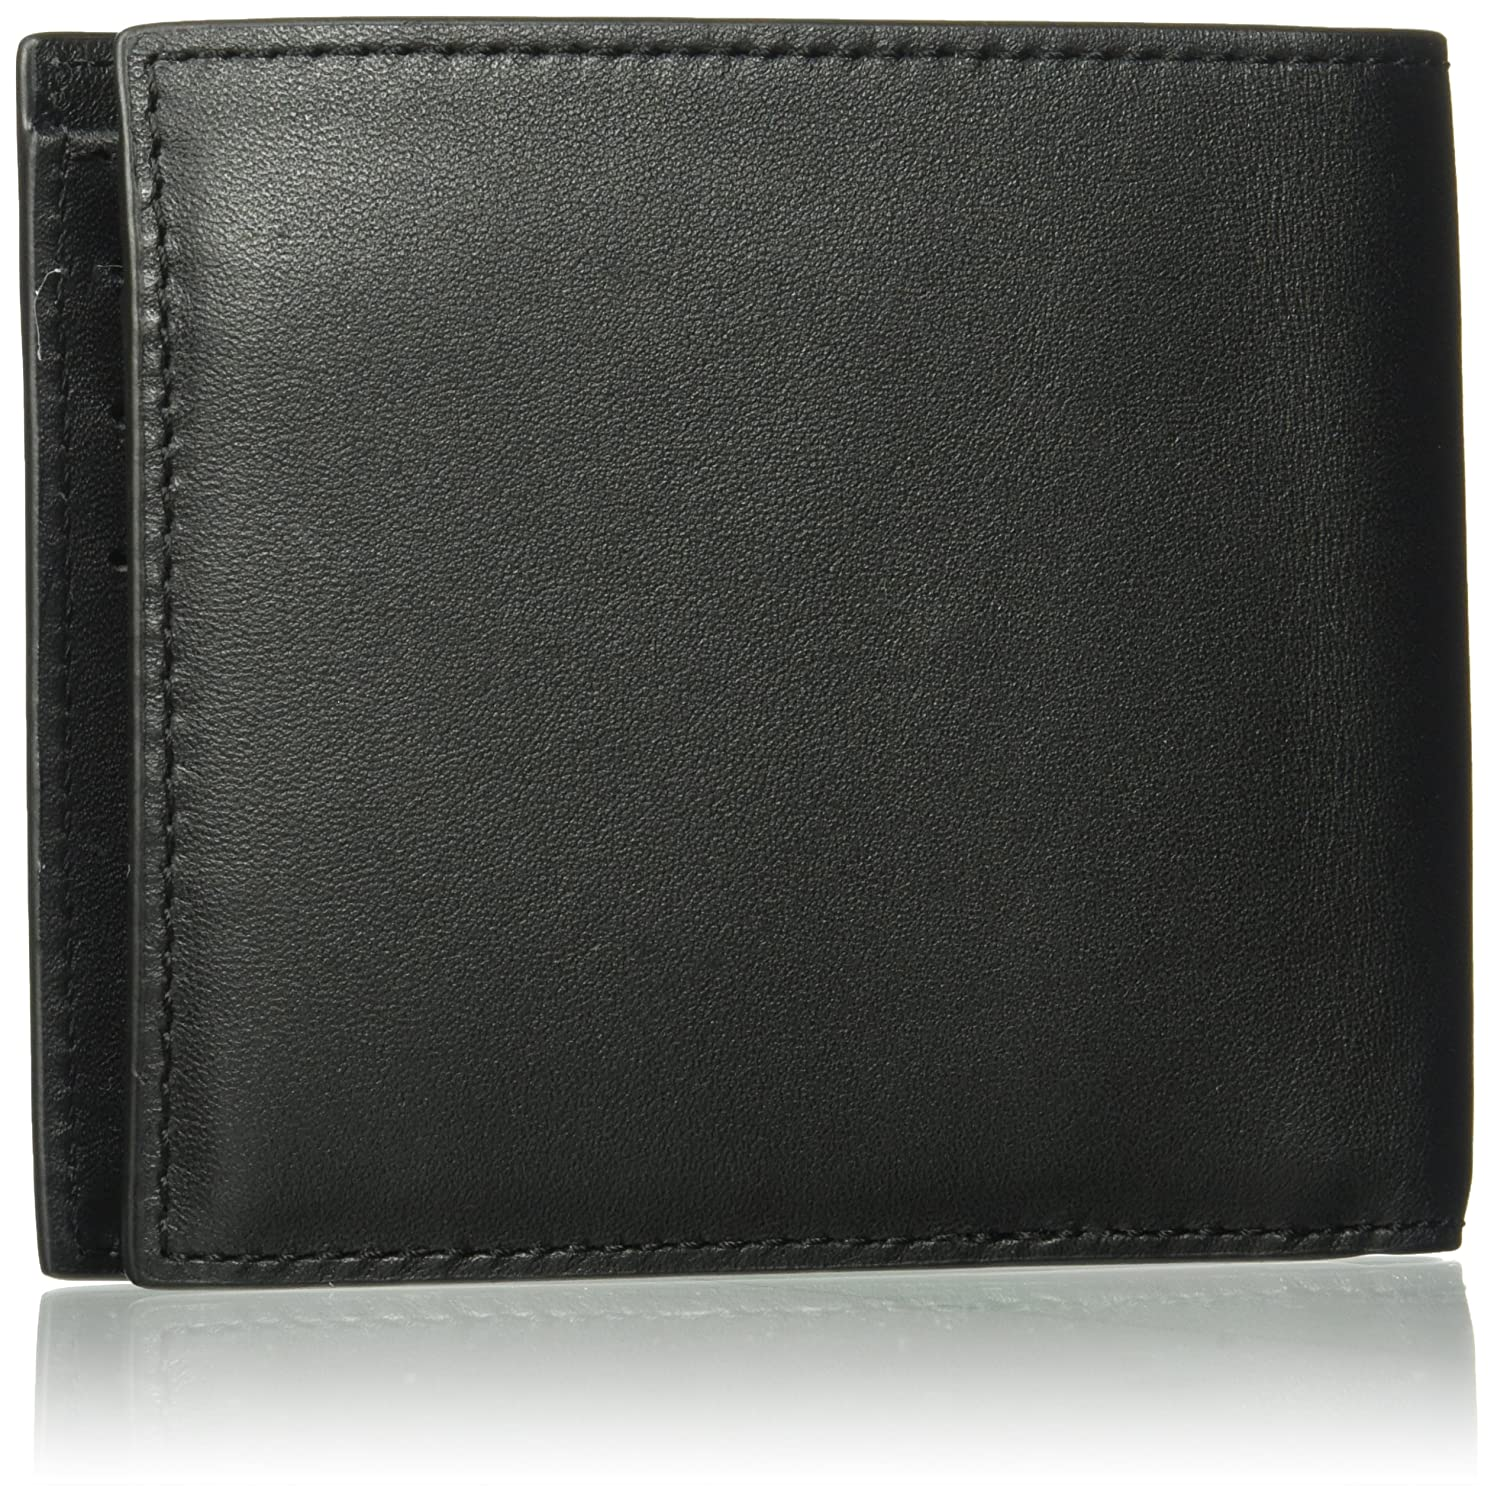 7f7b63ee91 Lacoste Men's Fitzgerald Leather Billfold Wallet, Black, One Size:  Amazon.ca: Clothing & Accessories